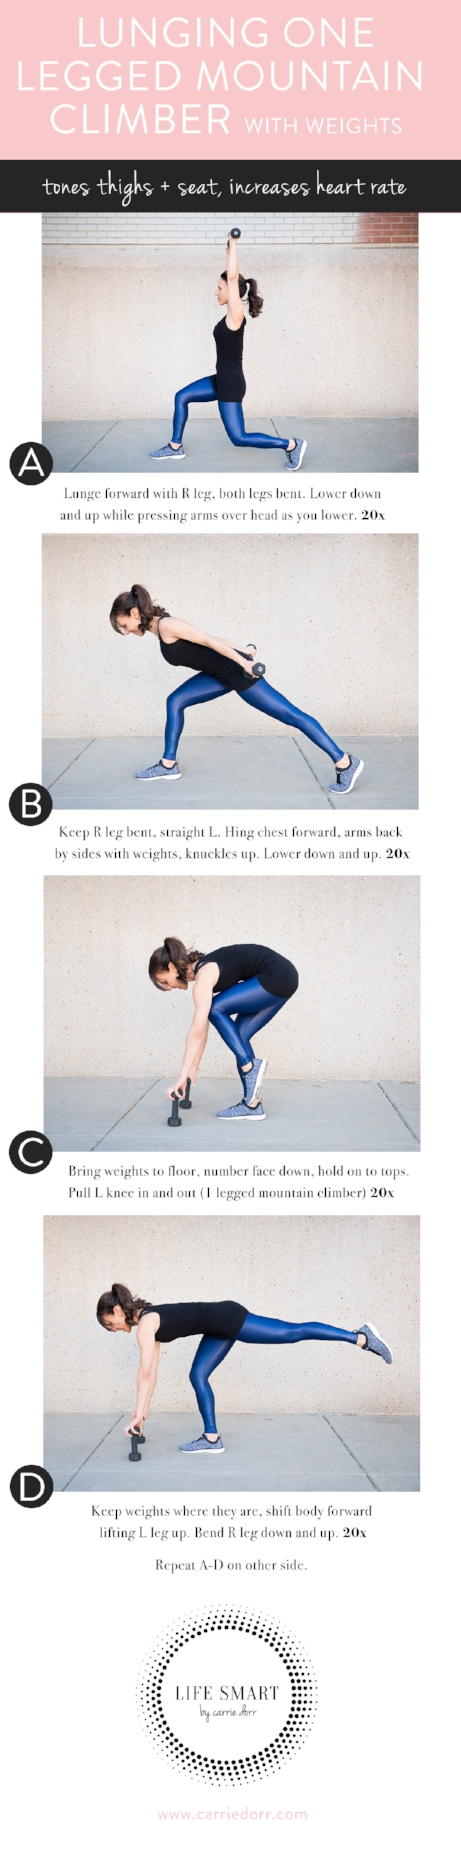 Lunge with One Legged Mountain Climber (with weights)- LIFE SMART by Carrie Dorr